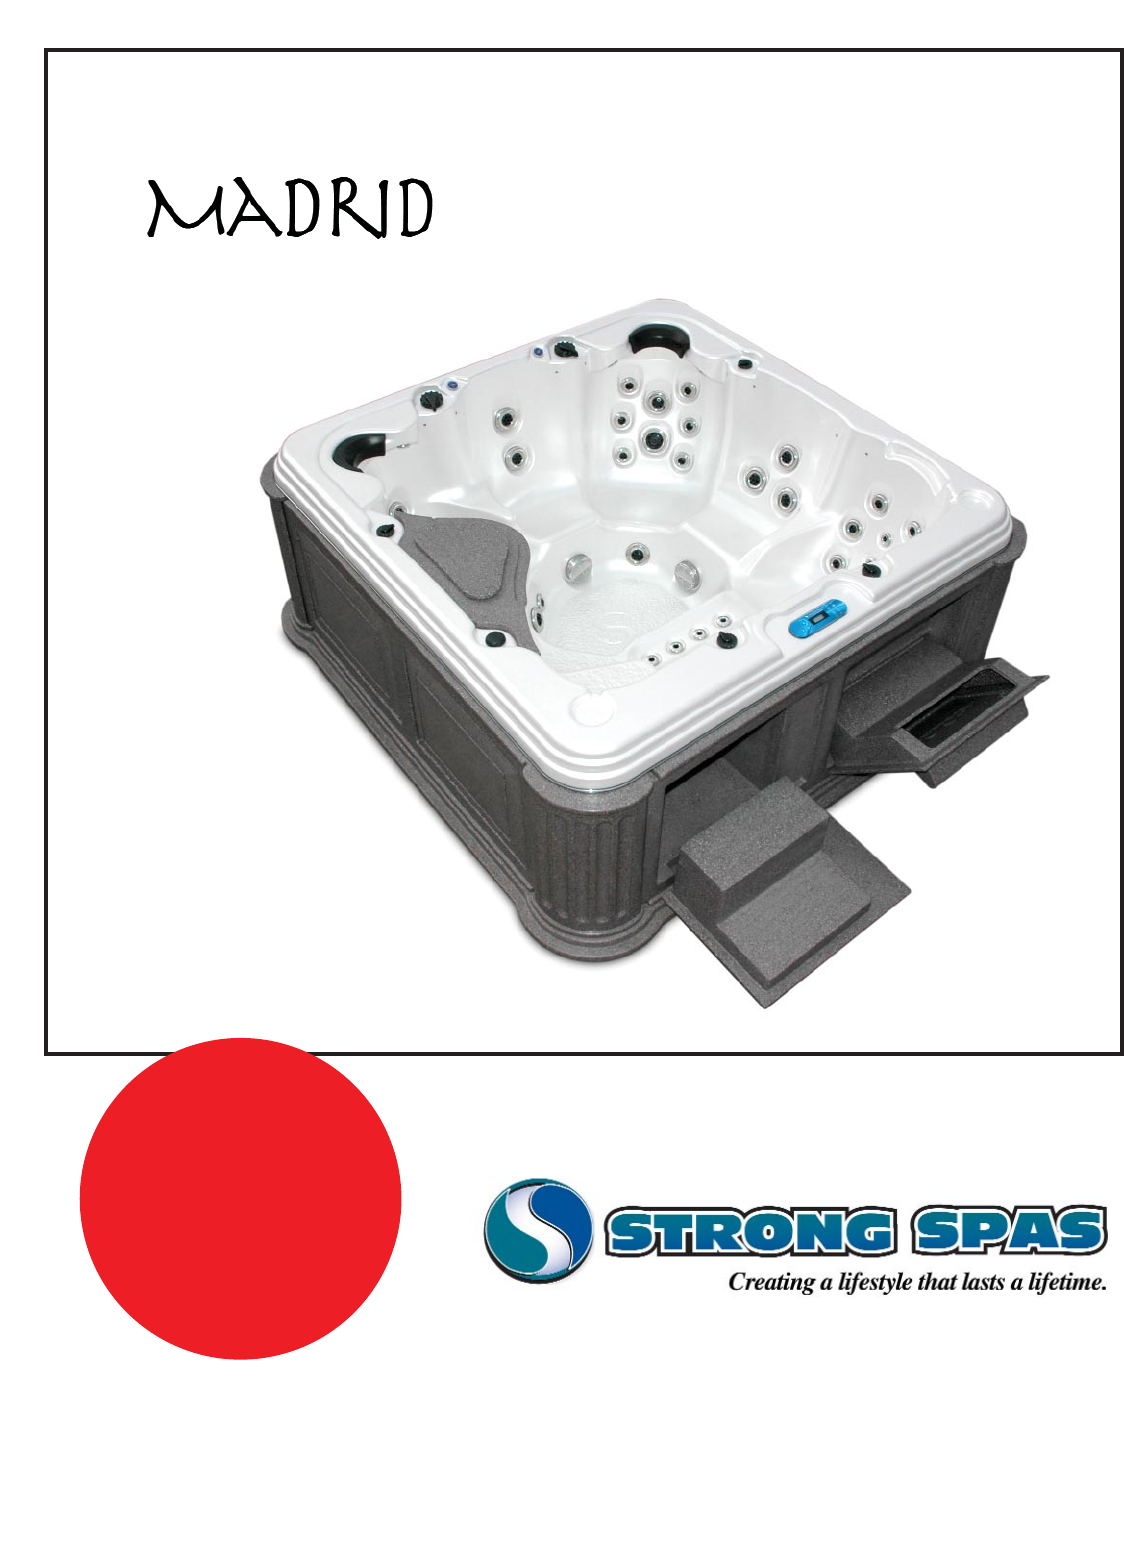 1dbe2c47 c9bf 4ca9 8a22 4b85cee32953 bg1 strong pools and spas hot tub madrid user guide manualsonline com Typical Hot Tub Wiring Diagram at n-0.co